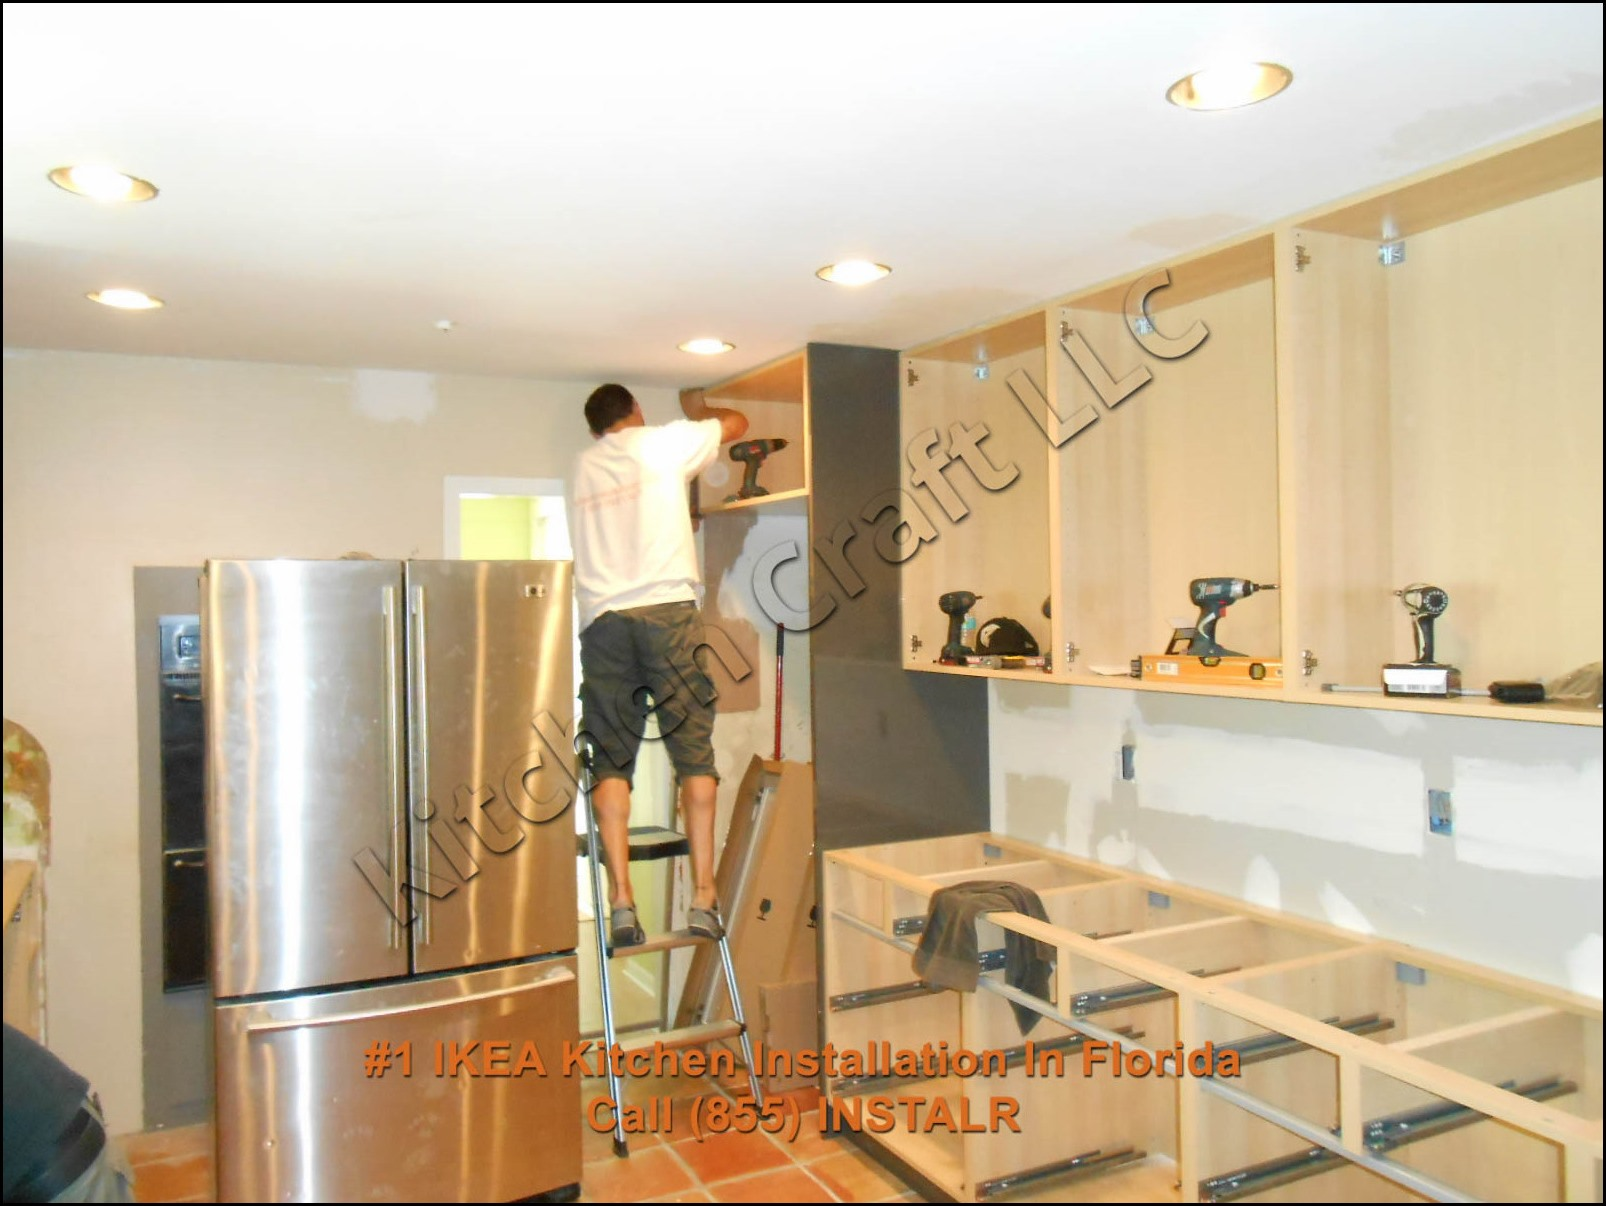 How To Install Ikea Kitchen Cabinets Installing Ikea Kitchen Cabinets Youtube Price To Set Up